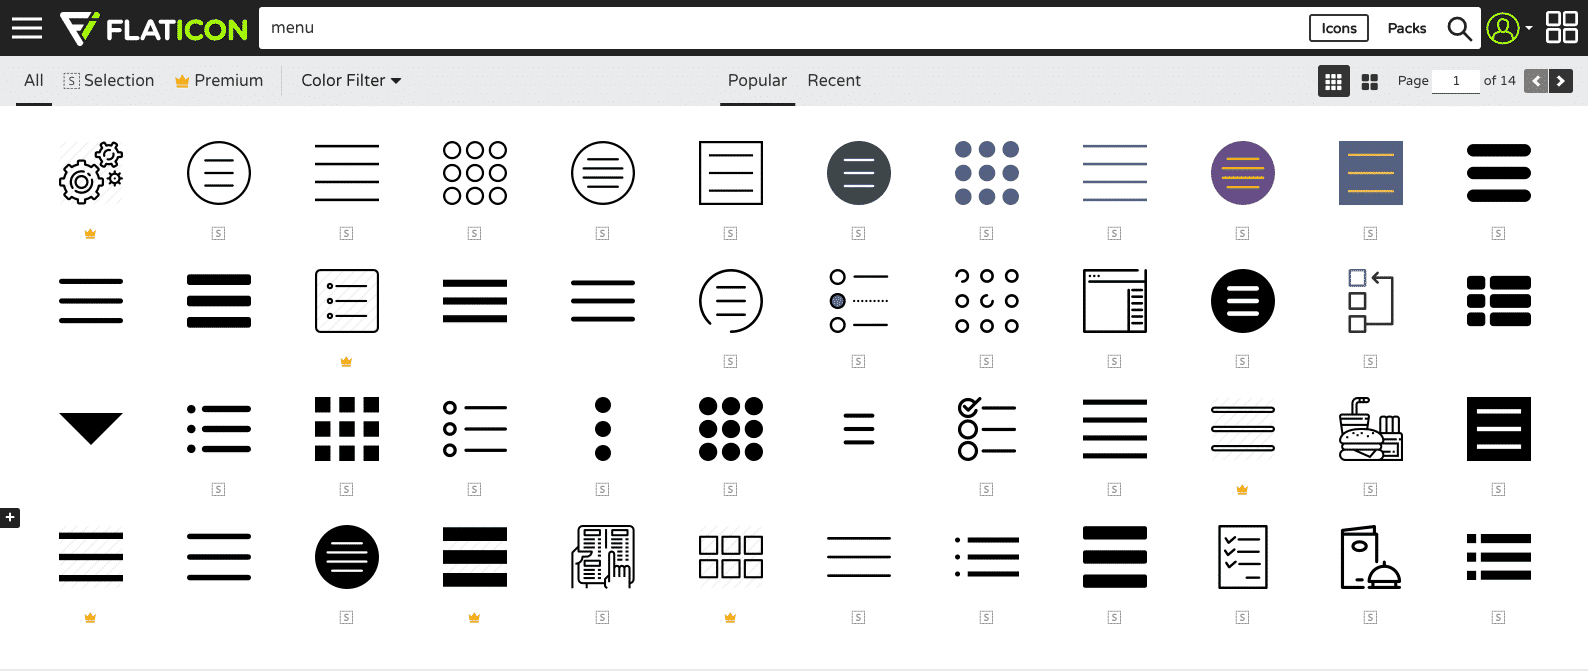 How to Find Icons